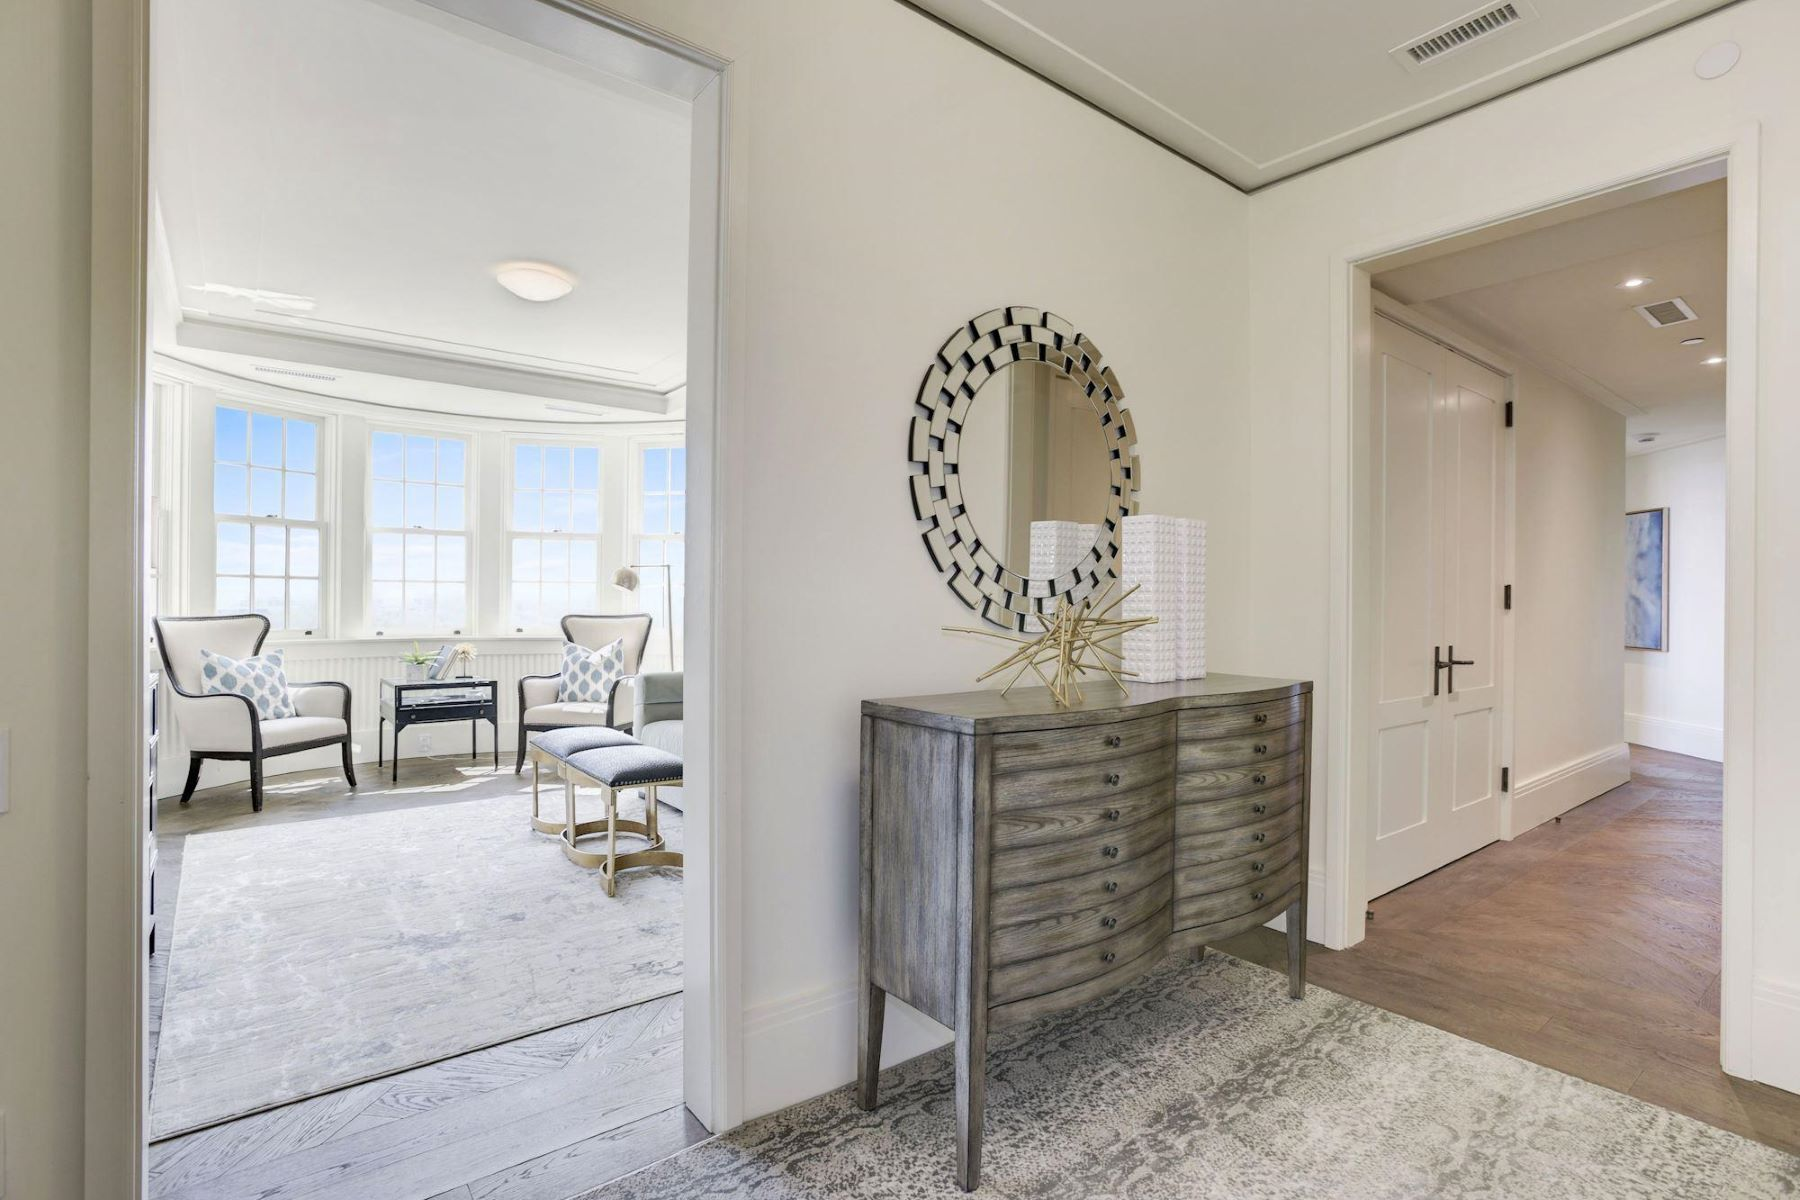 Condominium for Sale at 2660 Connecticut Ave NW #5e Washington, District Of Columbia 20008 United States